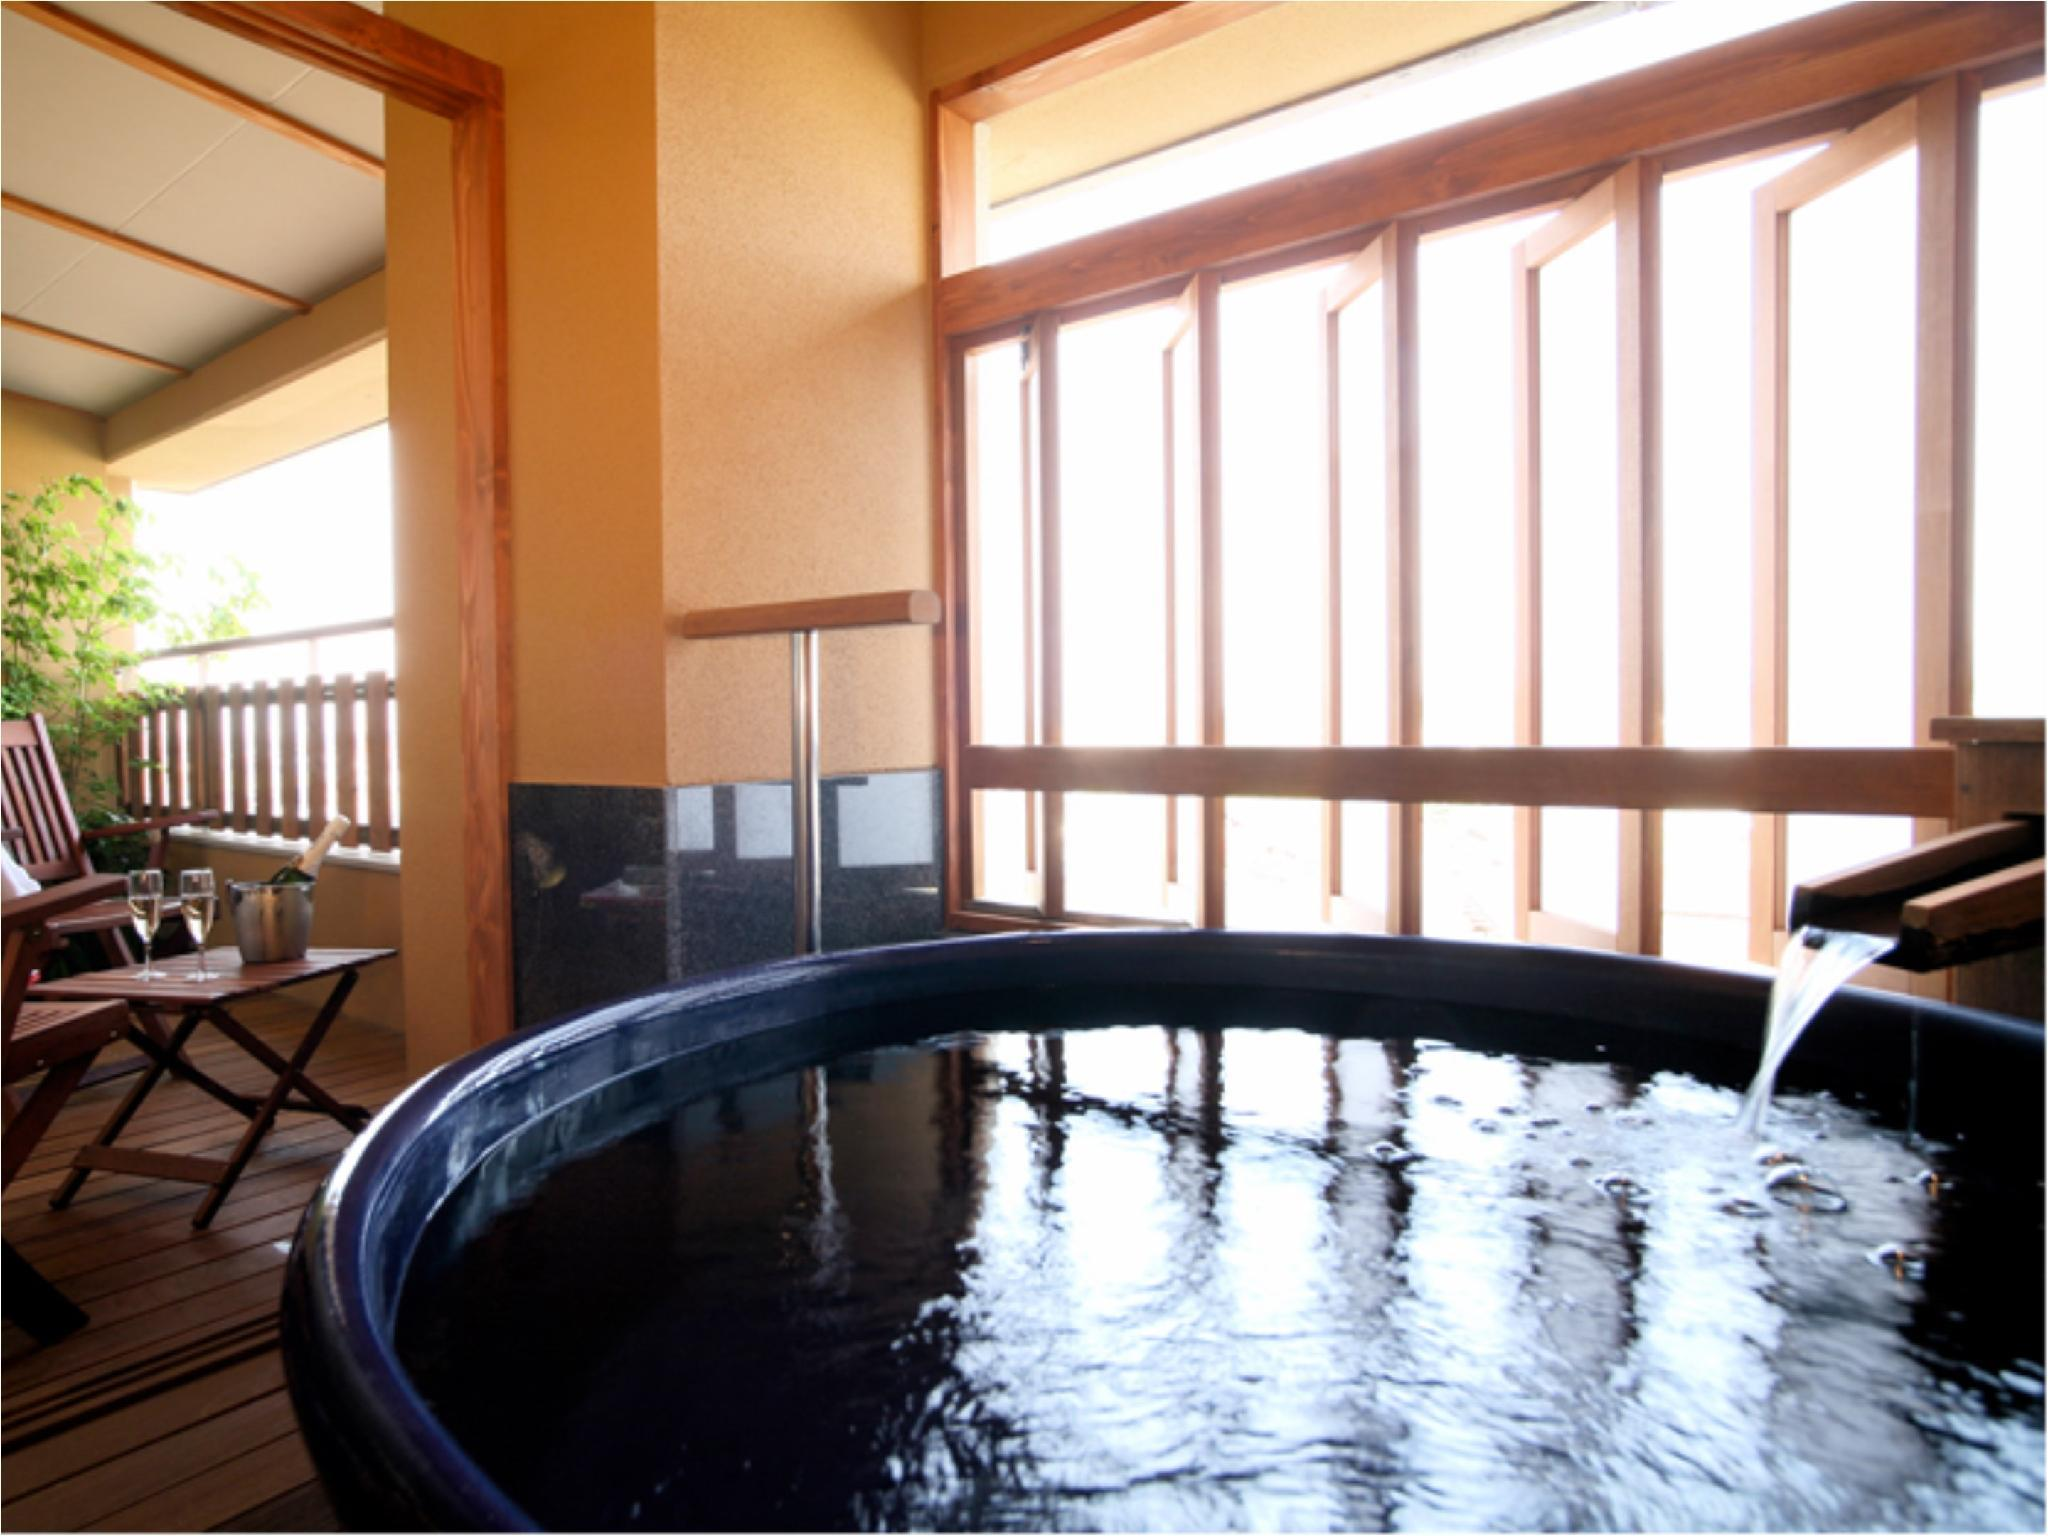 星の棟 露天風呂付スイート和洋室 和ベッド2台 (Japanese/Western-style Suite with Open-air Bath (2 Japanese Beds, Hoshi-no-To Wing))